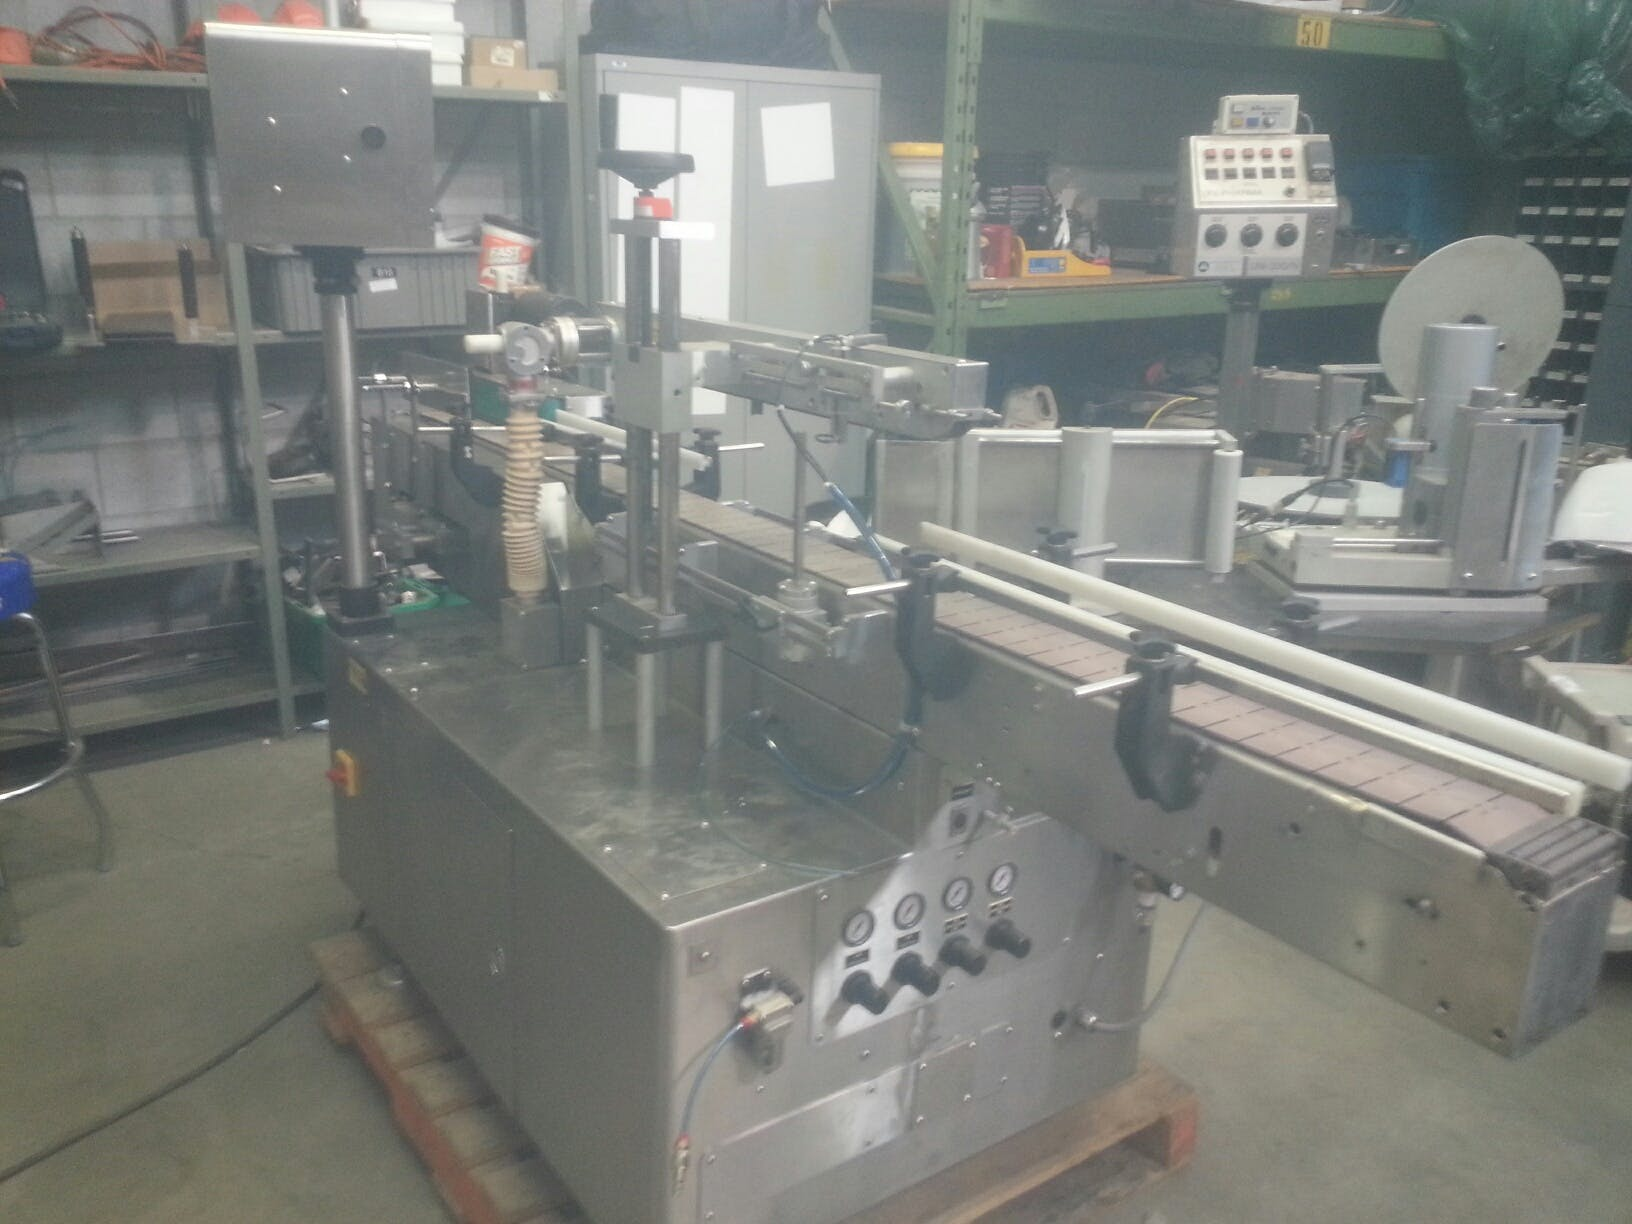 UNI-PHARMA UNI-600 Labeler Bottle labeler sold by Aevos Equipment